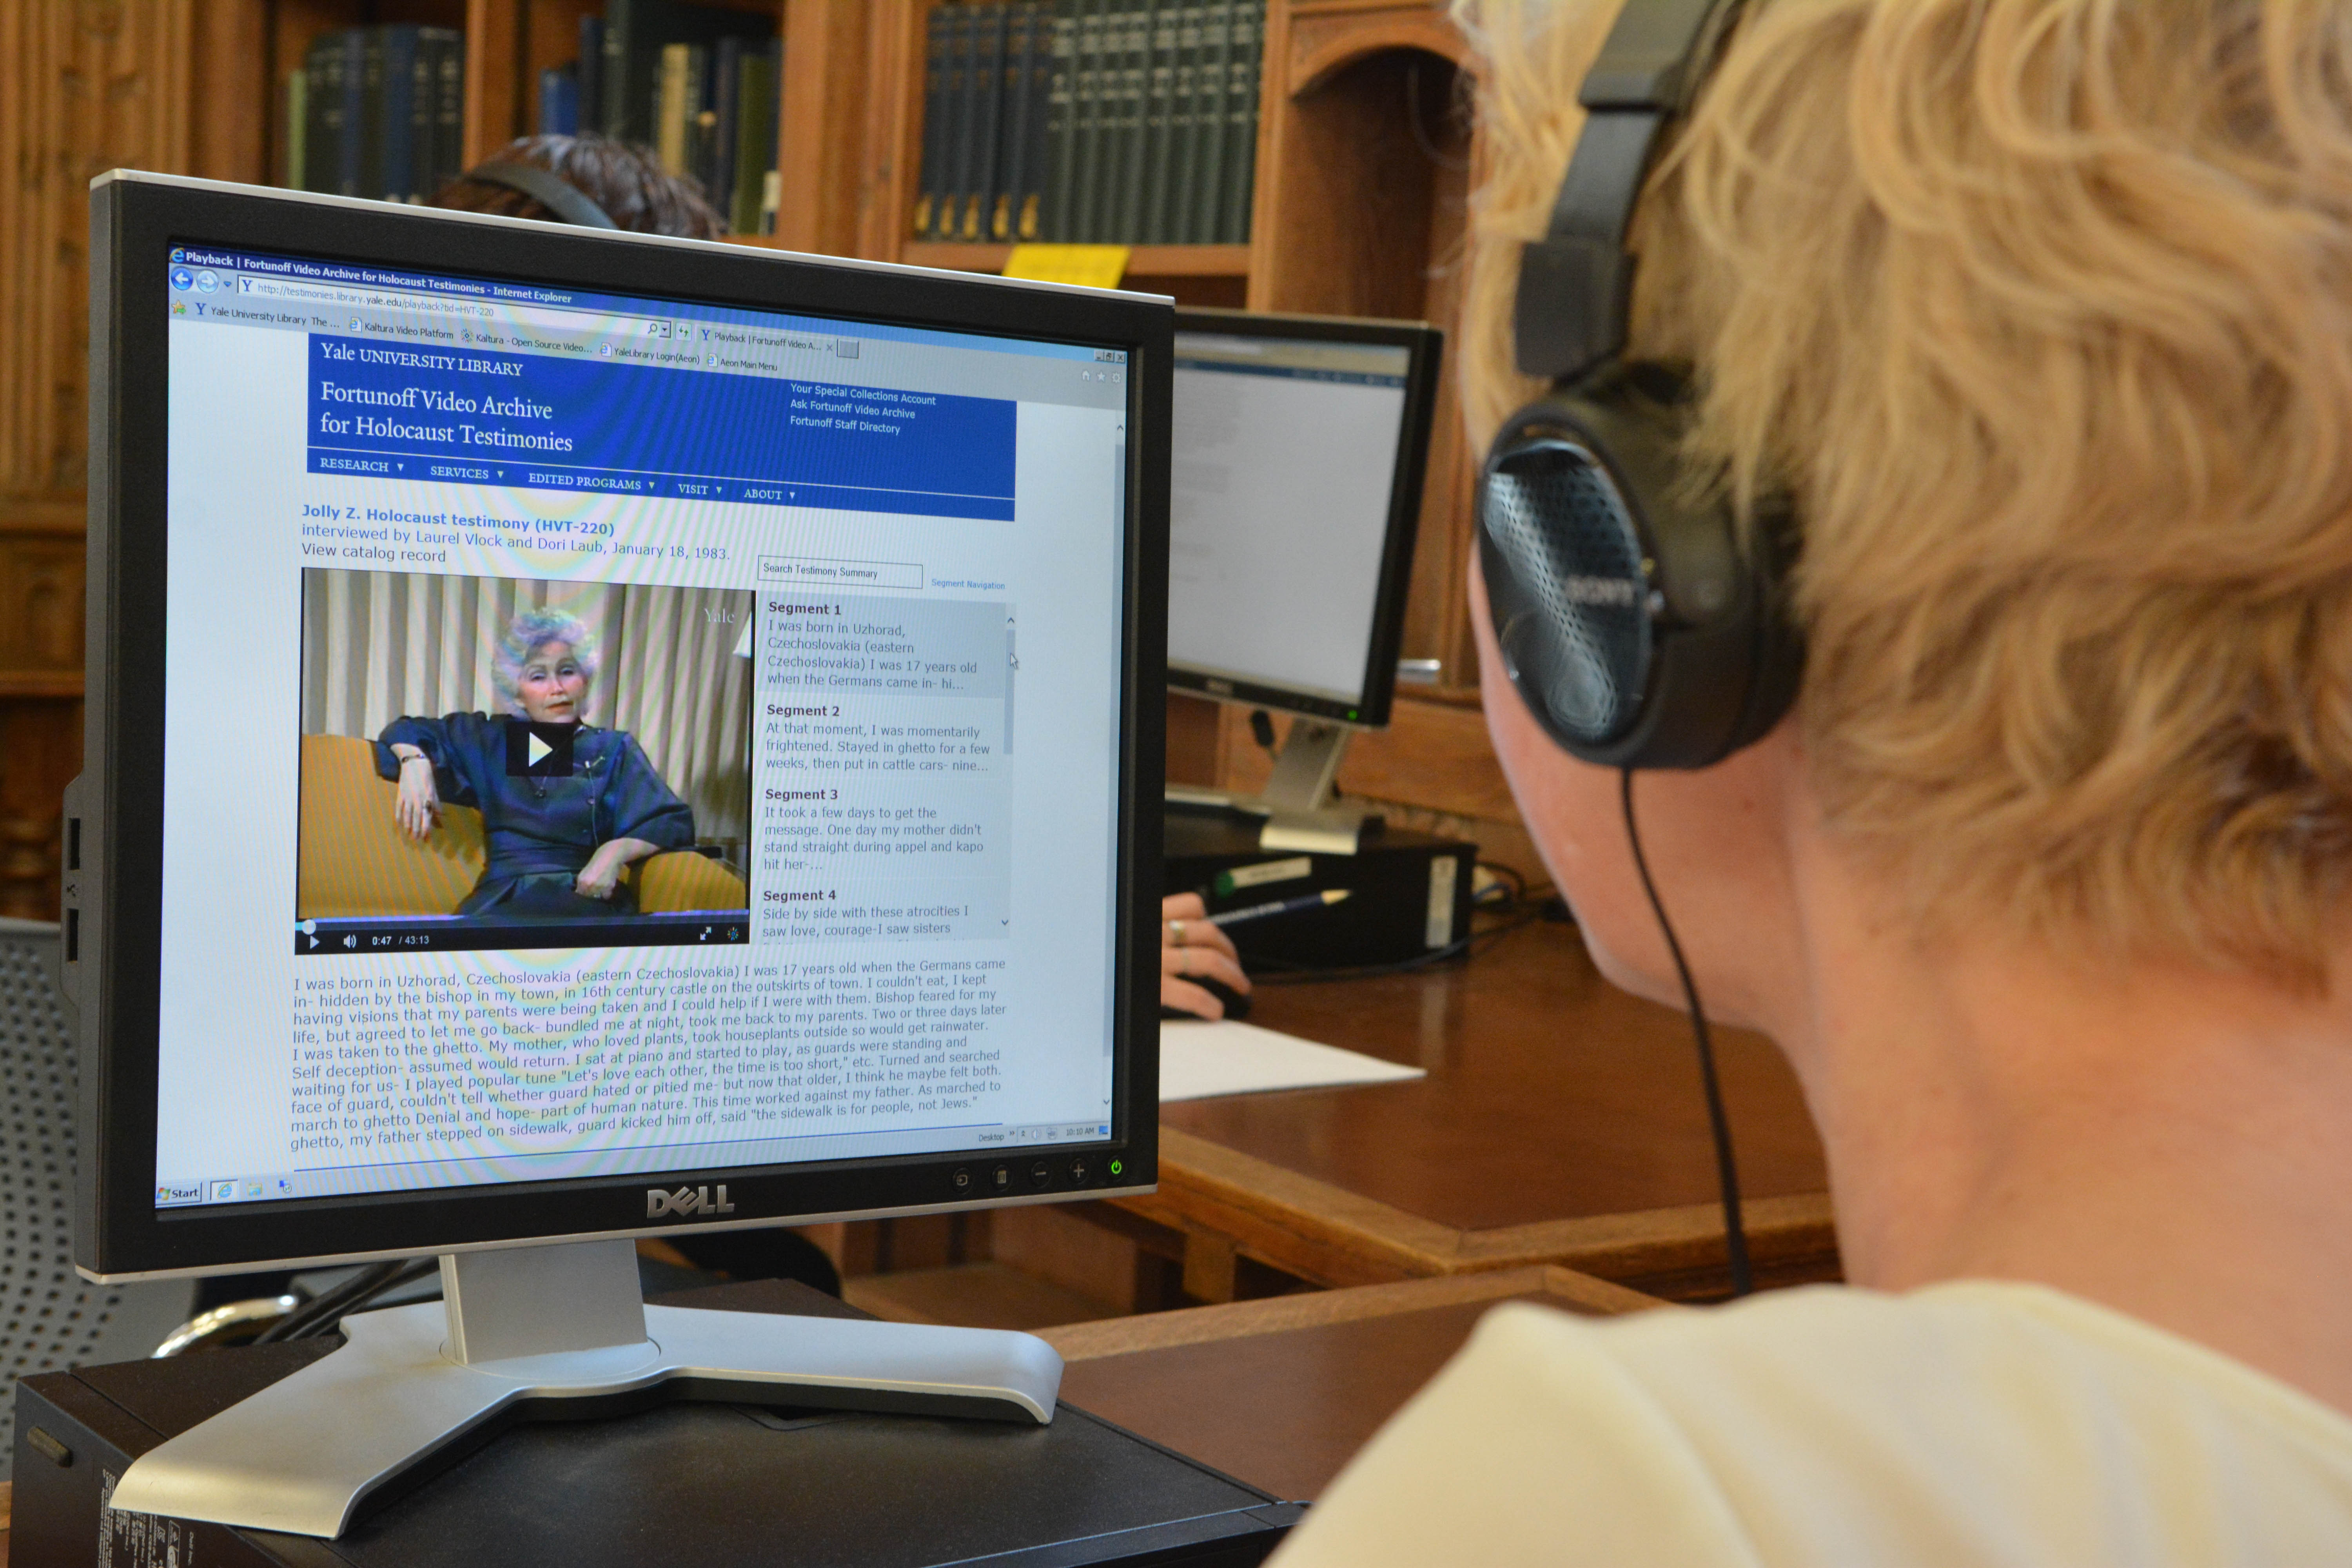 Researcher viewing a testimony in the digital access system